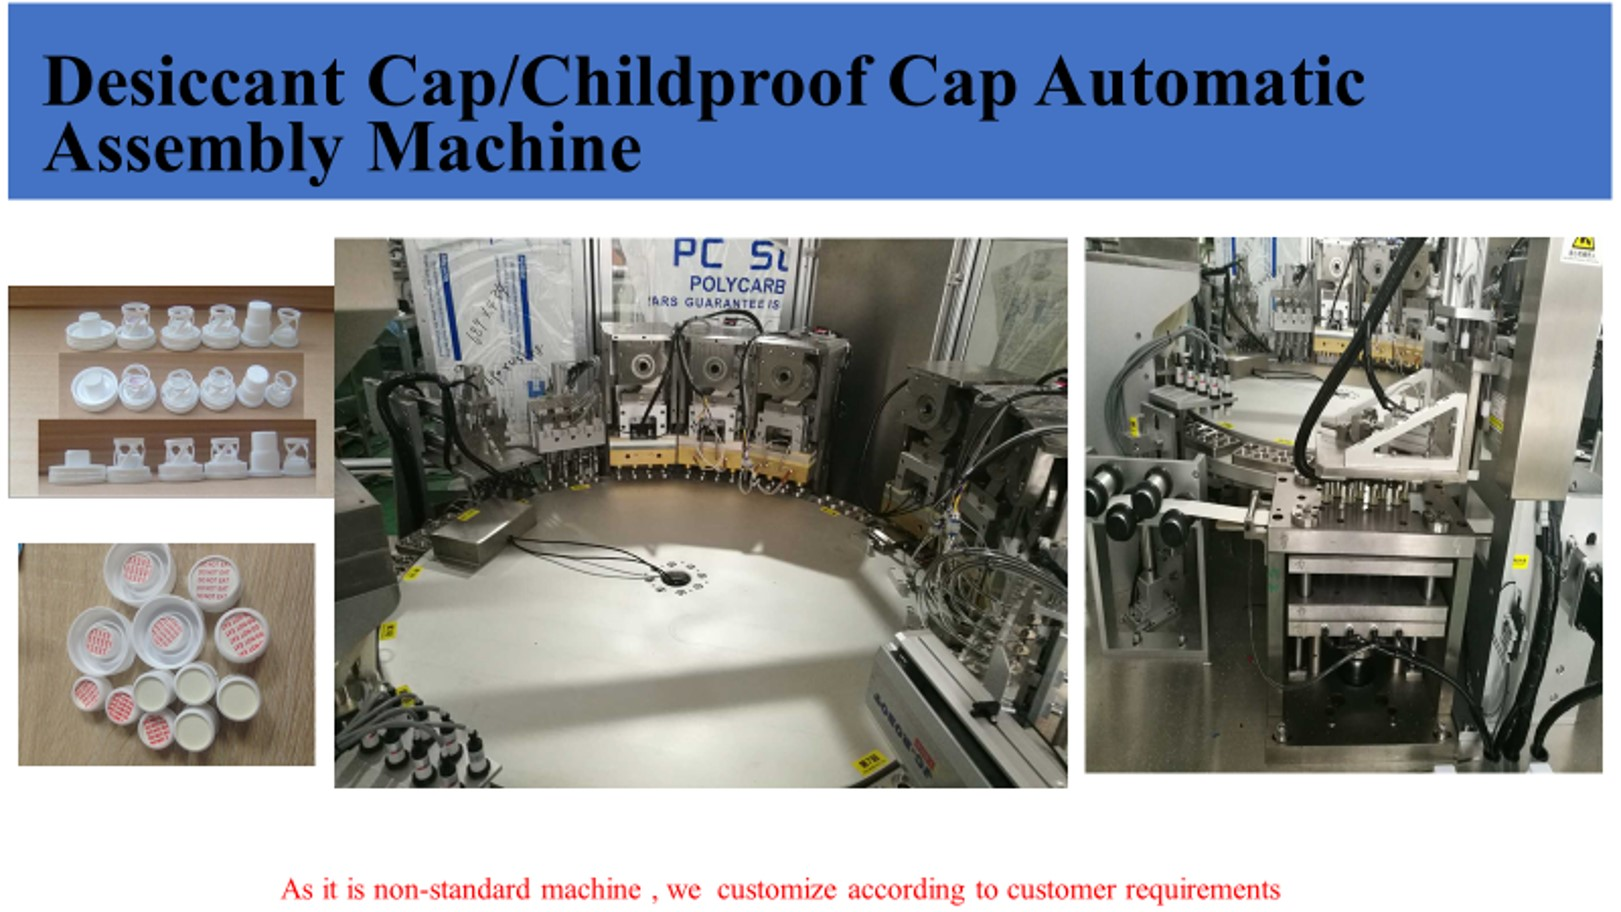 Child Resistant Closure Caps Desiccant Insert And Lining Assembly Machine